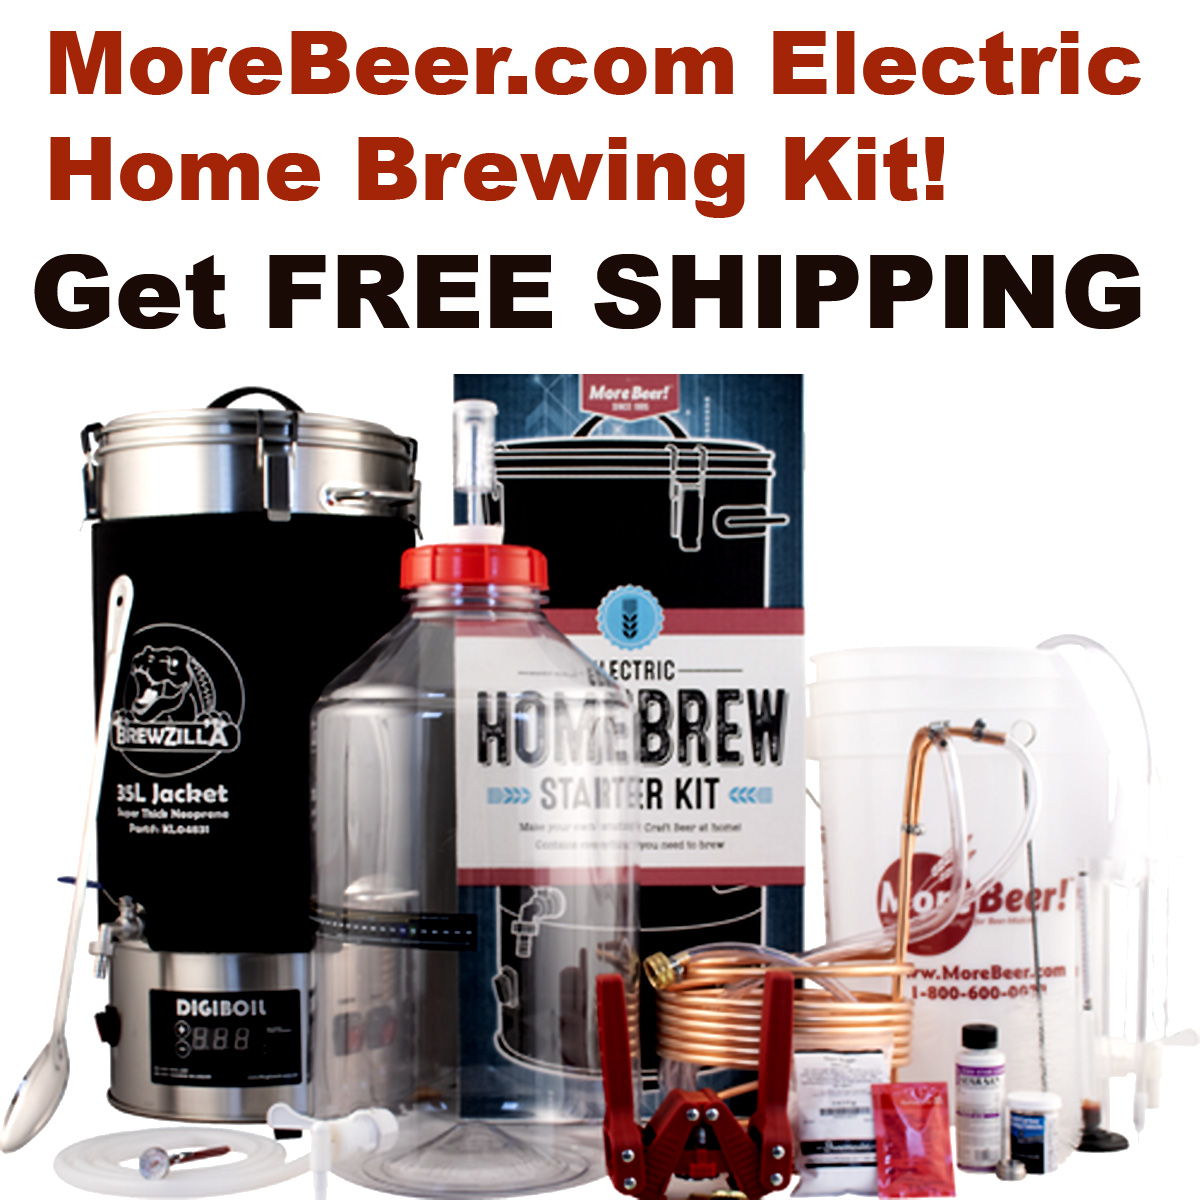 MoreBeer Get Free Shipping on the New MoreBeer.com Electric Home Brewing Kit with this More Beer Promo Code Coupon Code